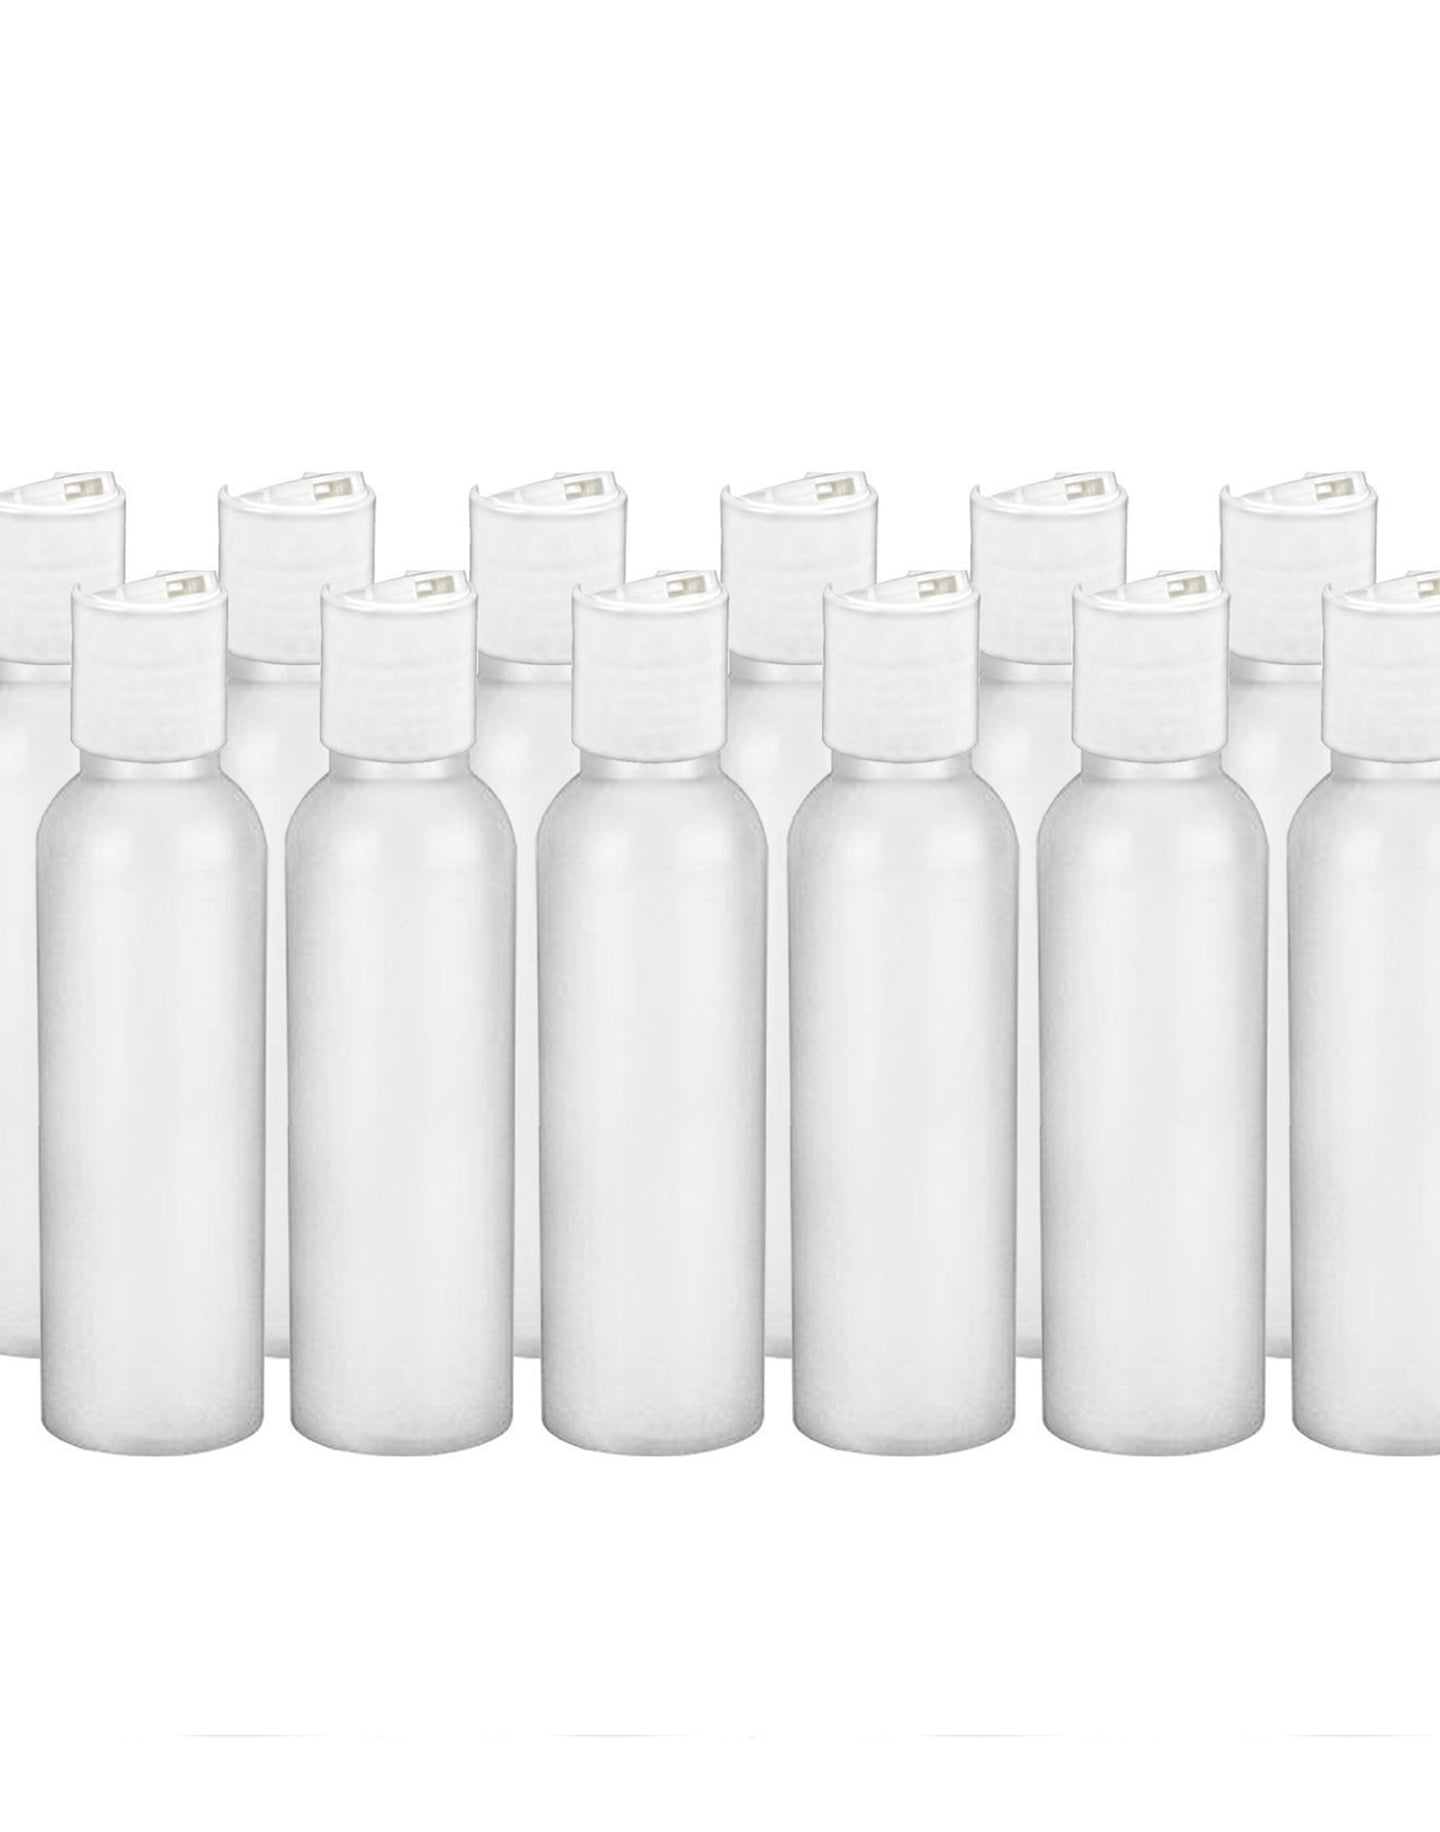 MoYo Natural Labs 4 oz Travel Bottles, Empty Travel Containers with Disc Caps, BPA Free HDPE Plastic Squeezable Toiletry/Cosmetic Bottle (Neck 20-410) (Pack of 12, HDPE Translucent White)